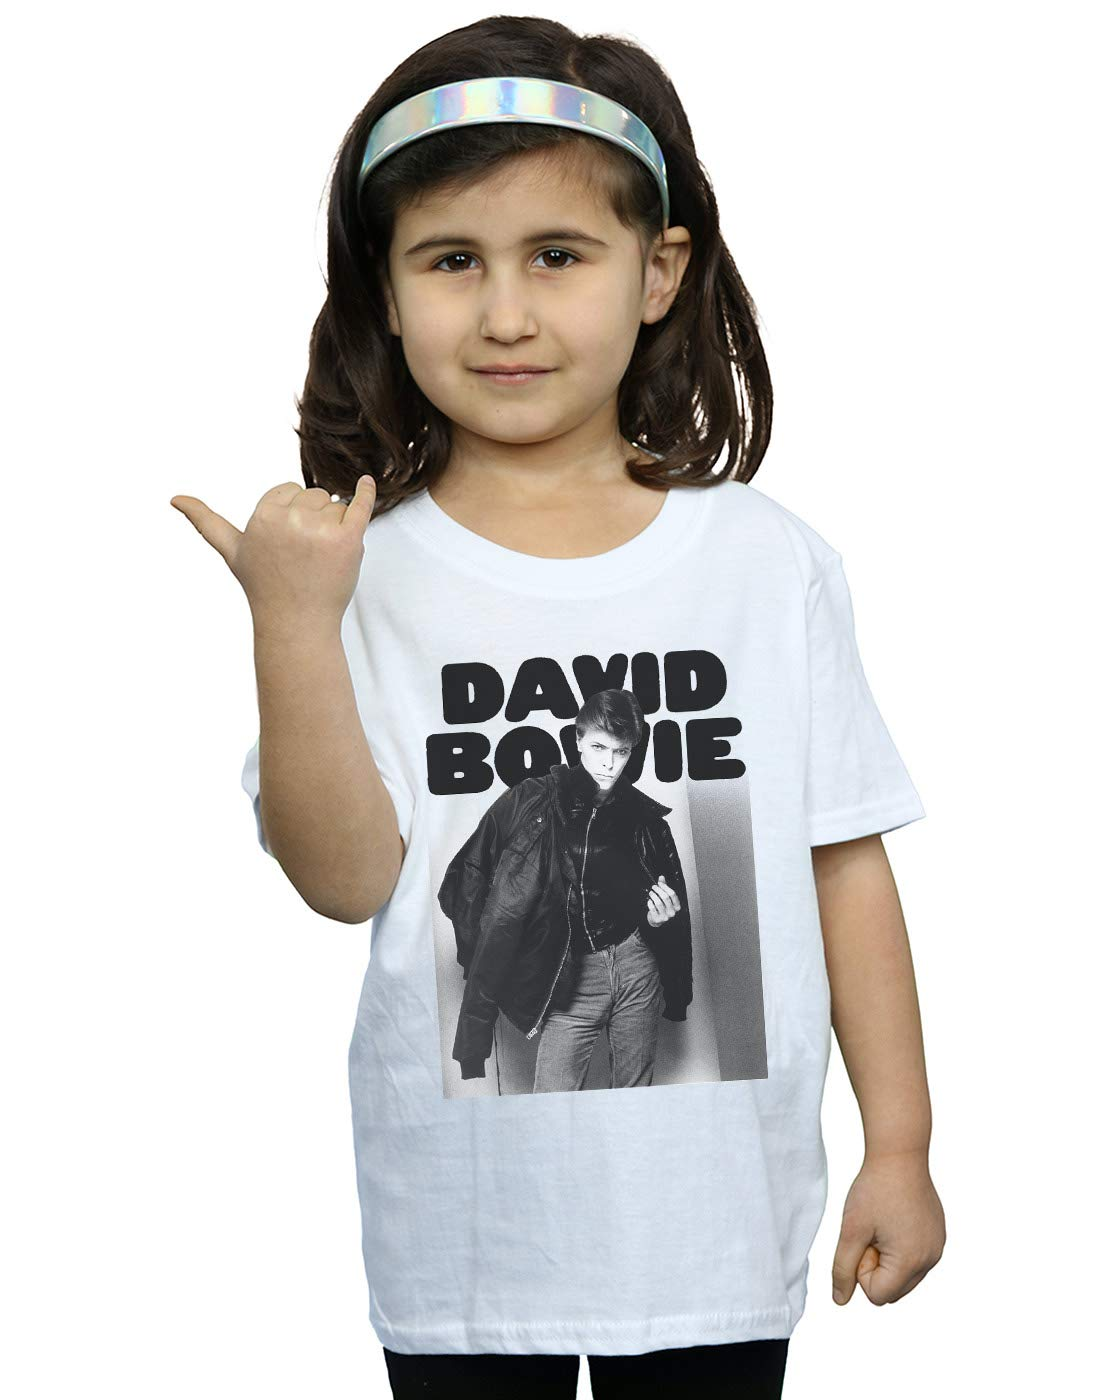 Absolute Cult David Bowie Girls Jacket Photograph T-Shirt White 7-8 Years by Absolute Cult